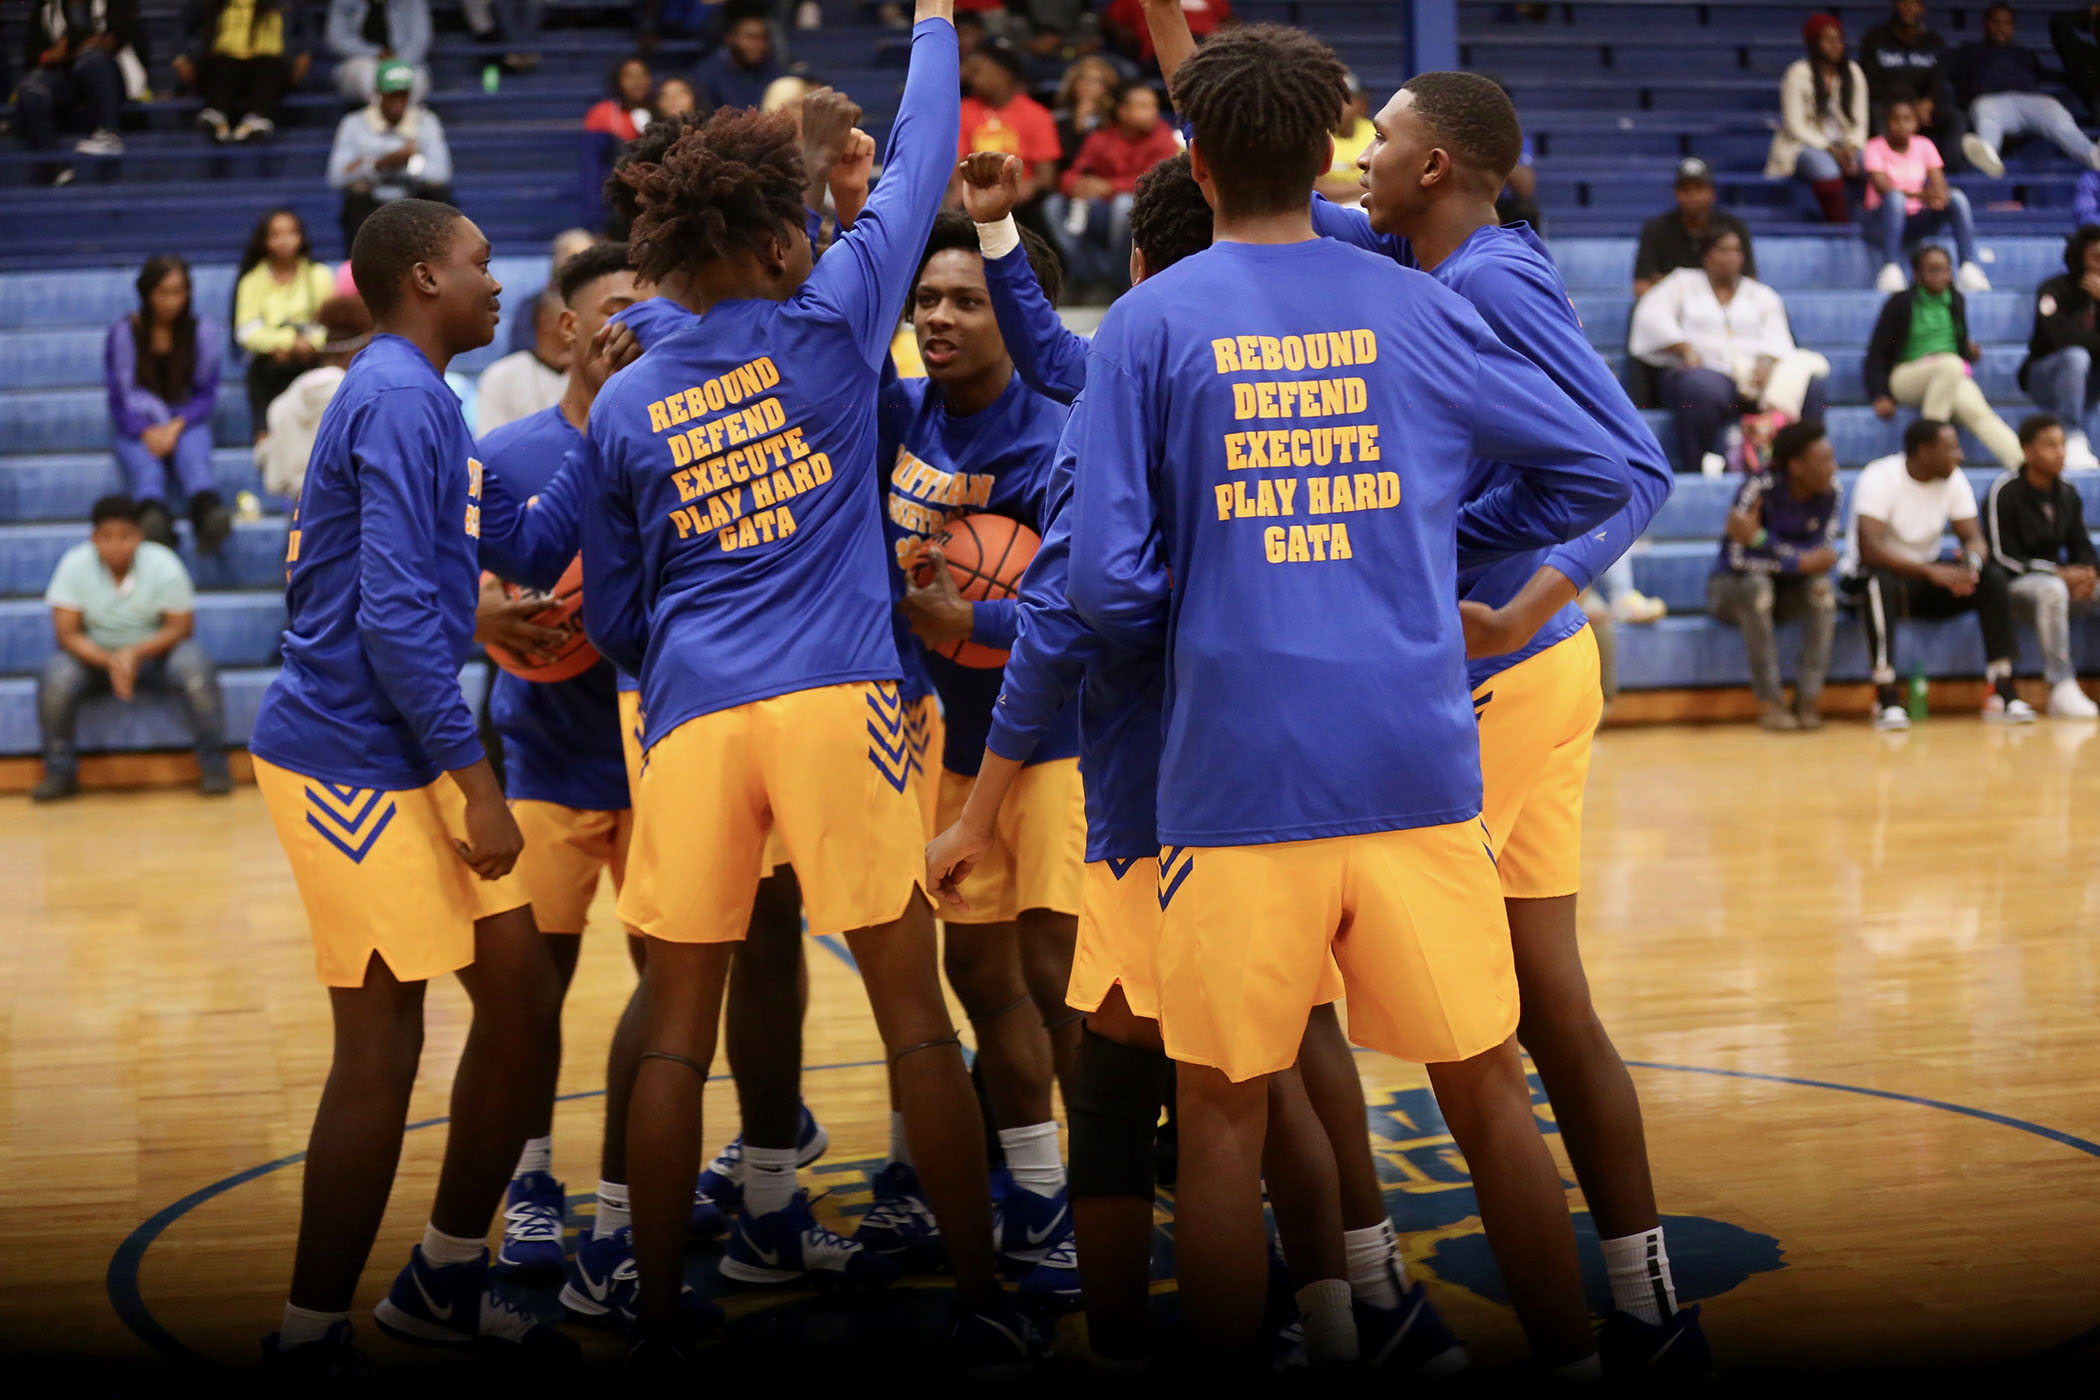 Panther Basketball gets hyped before a game.